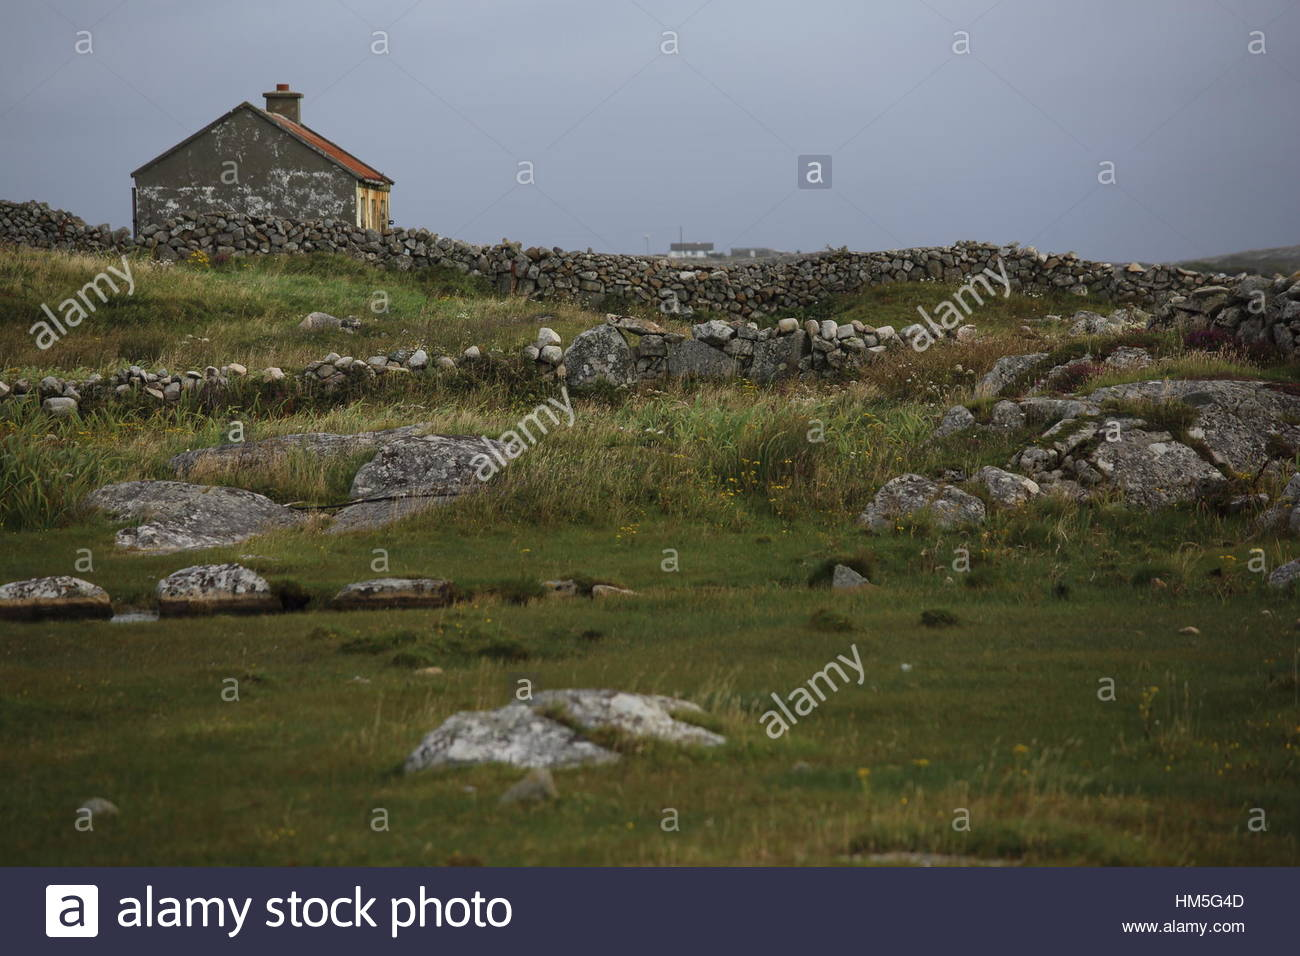 Irish outhouse made of stone and stone walls in Galway, Ireland - Stock Image